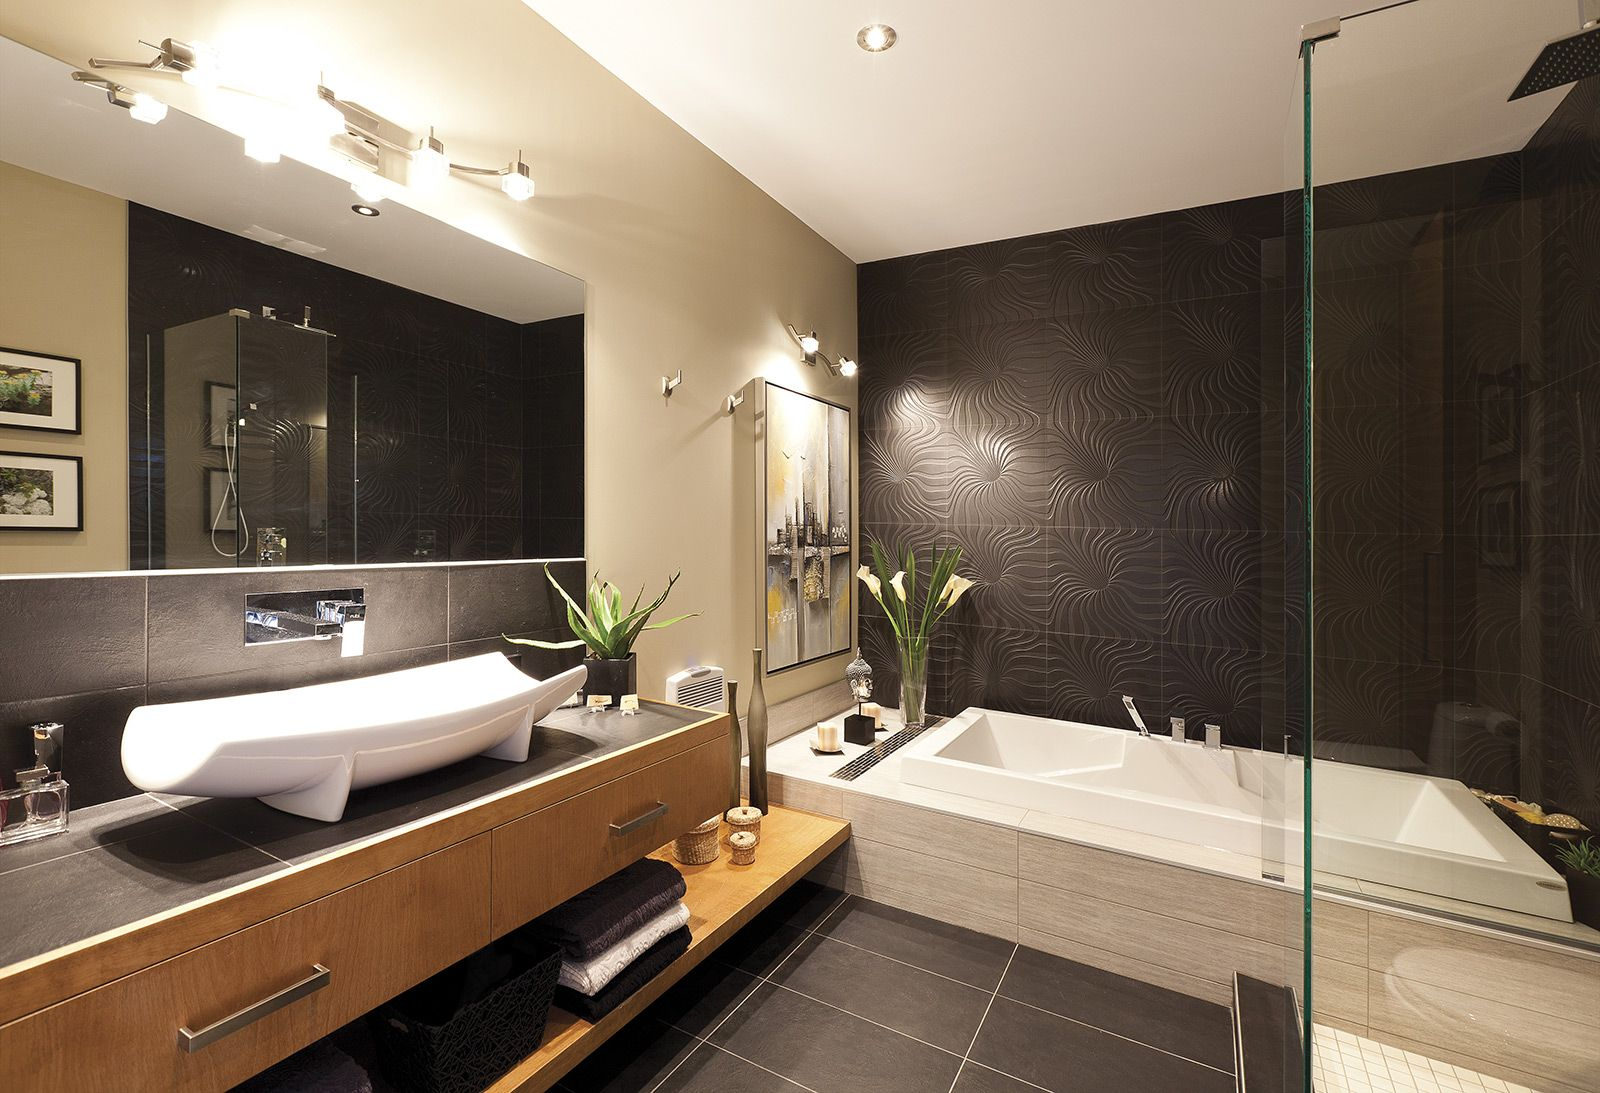 salle de bain archives page 2 sur 2 griffe cuisine. Black Bedroom Furniture Sets. Home Design Ideas